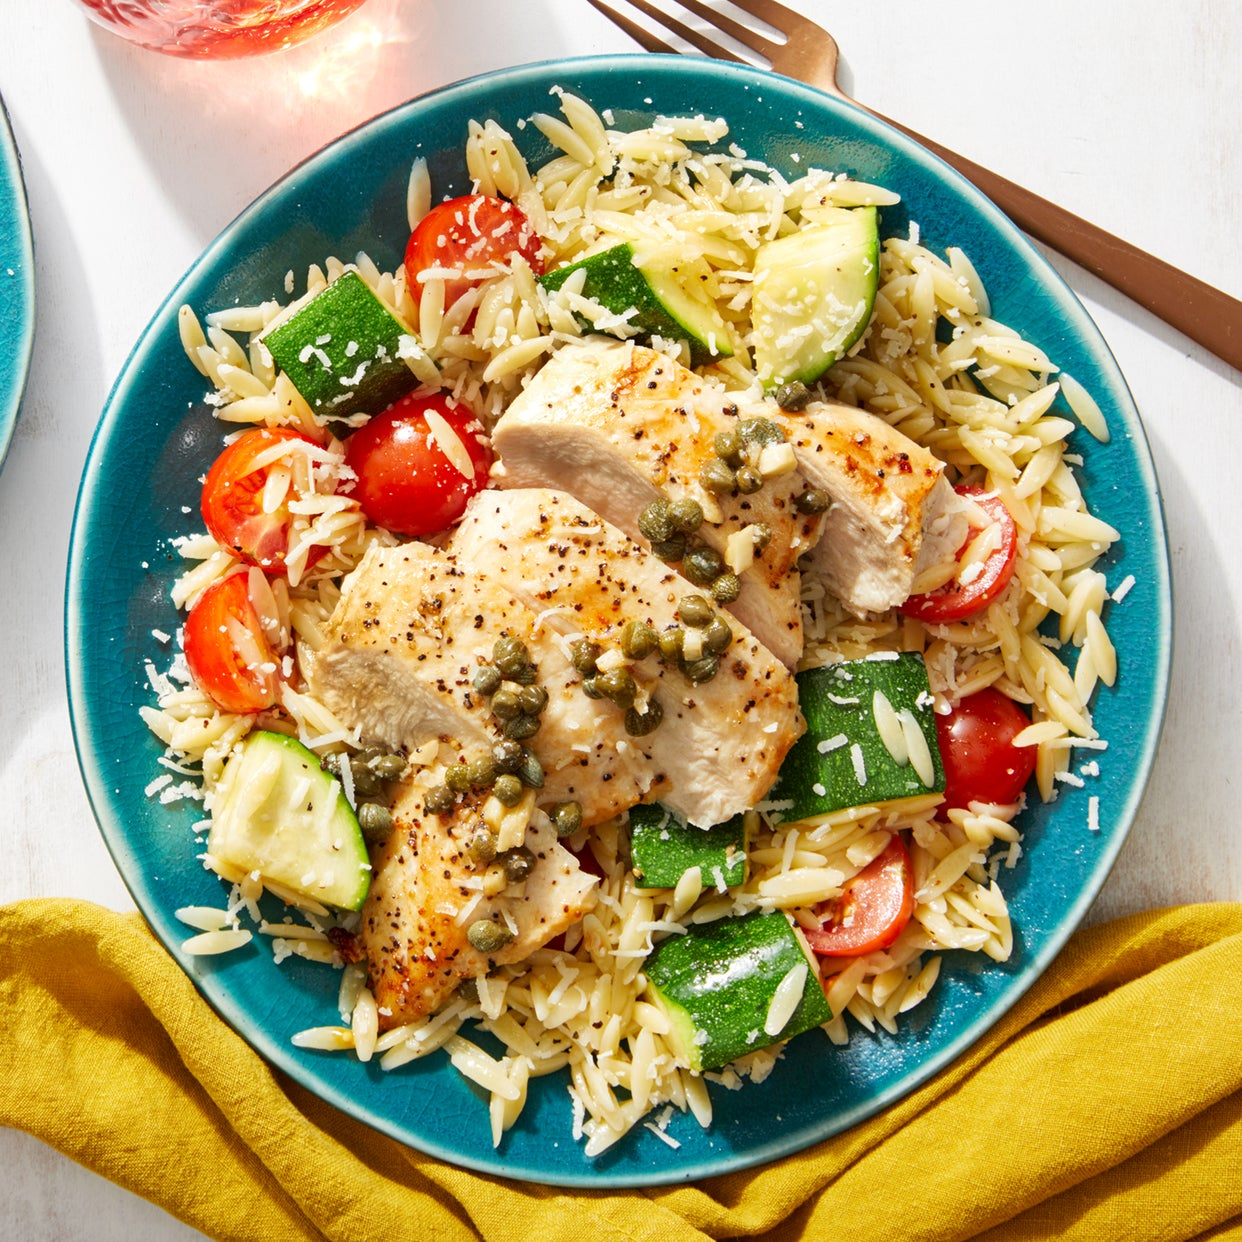 Chicken & Caper-Butter Sauce with Zucchini, Tomato, & Orzo Salad